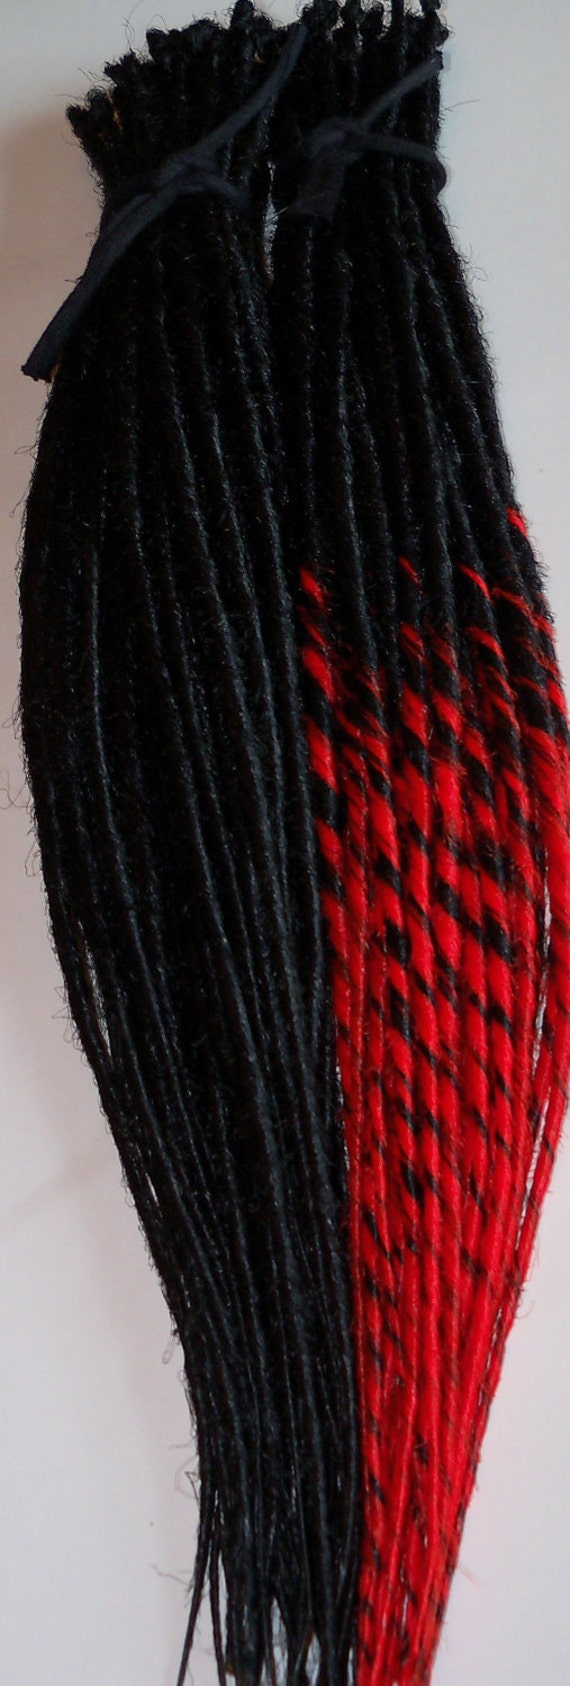 Synthetic Extensions Dreads 23